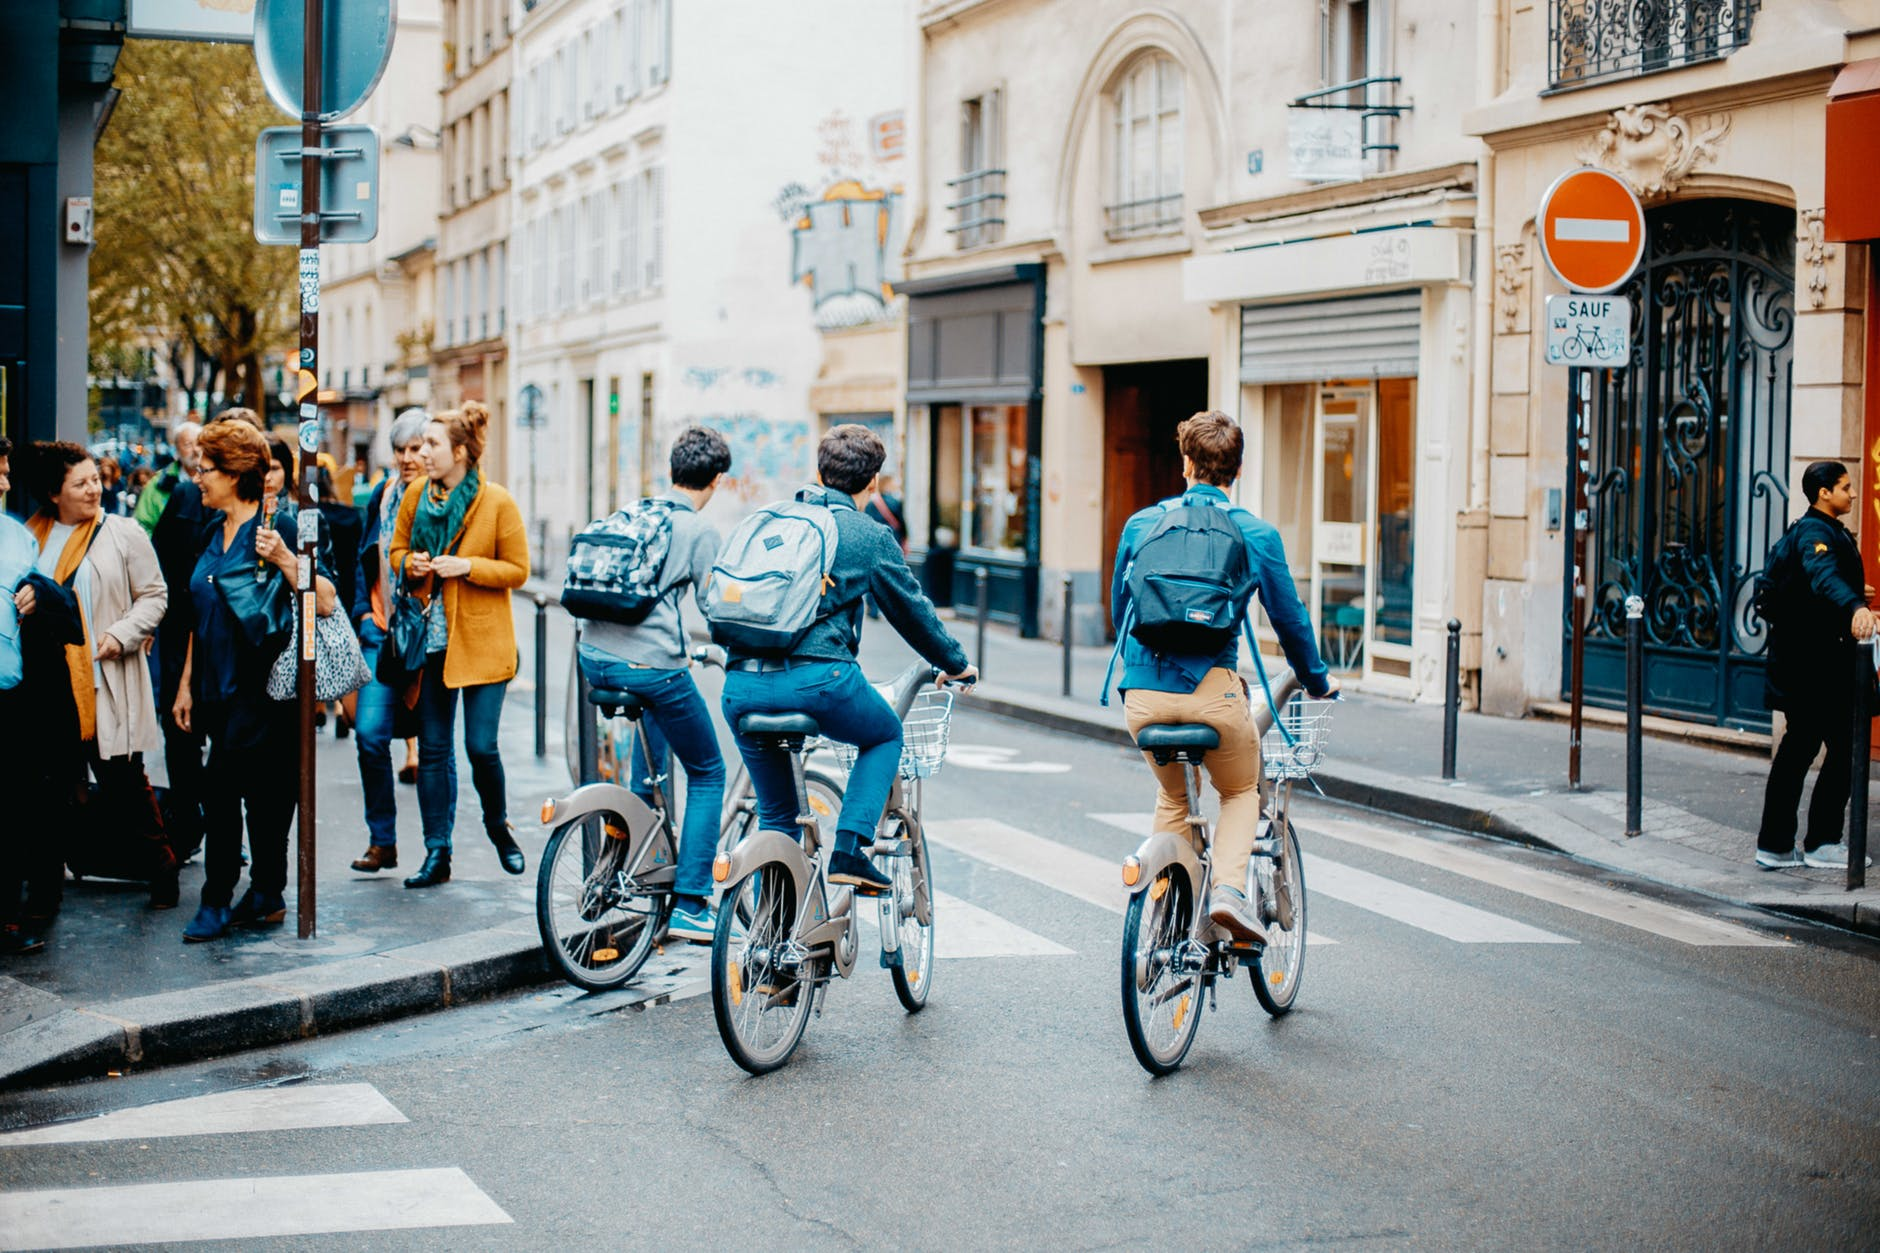 photo of people riding bicycle on street